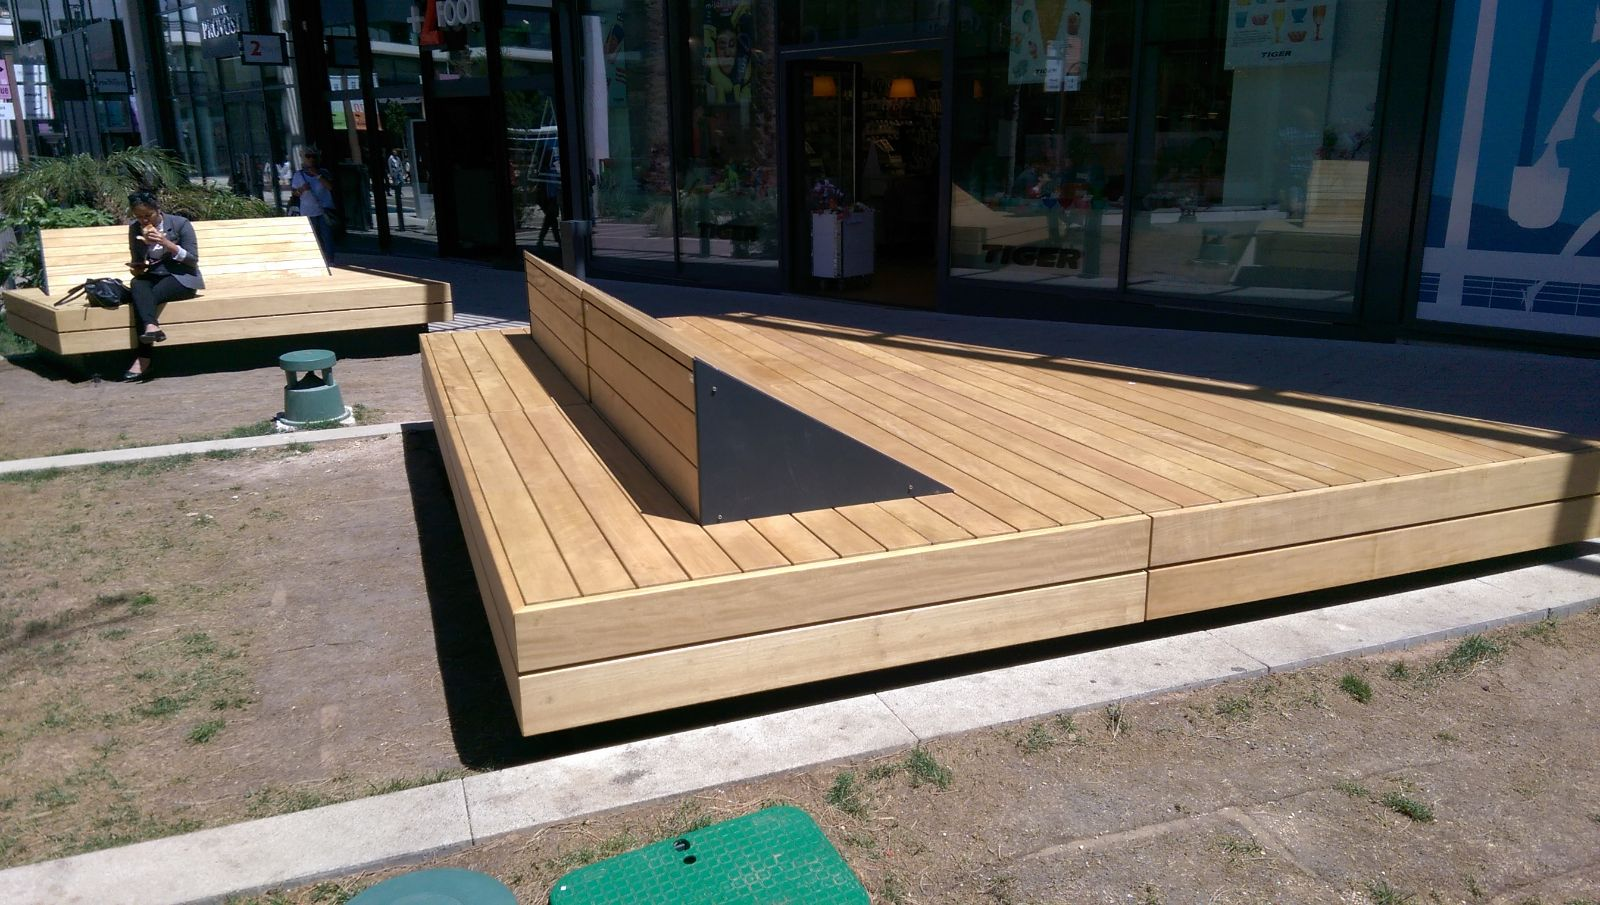 euroform w - urban furniture - park bench wood - seating - modular bench